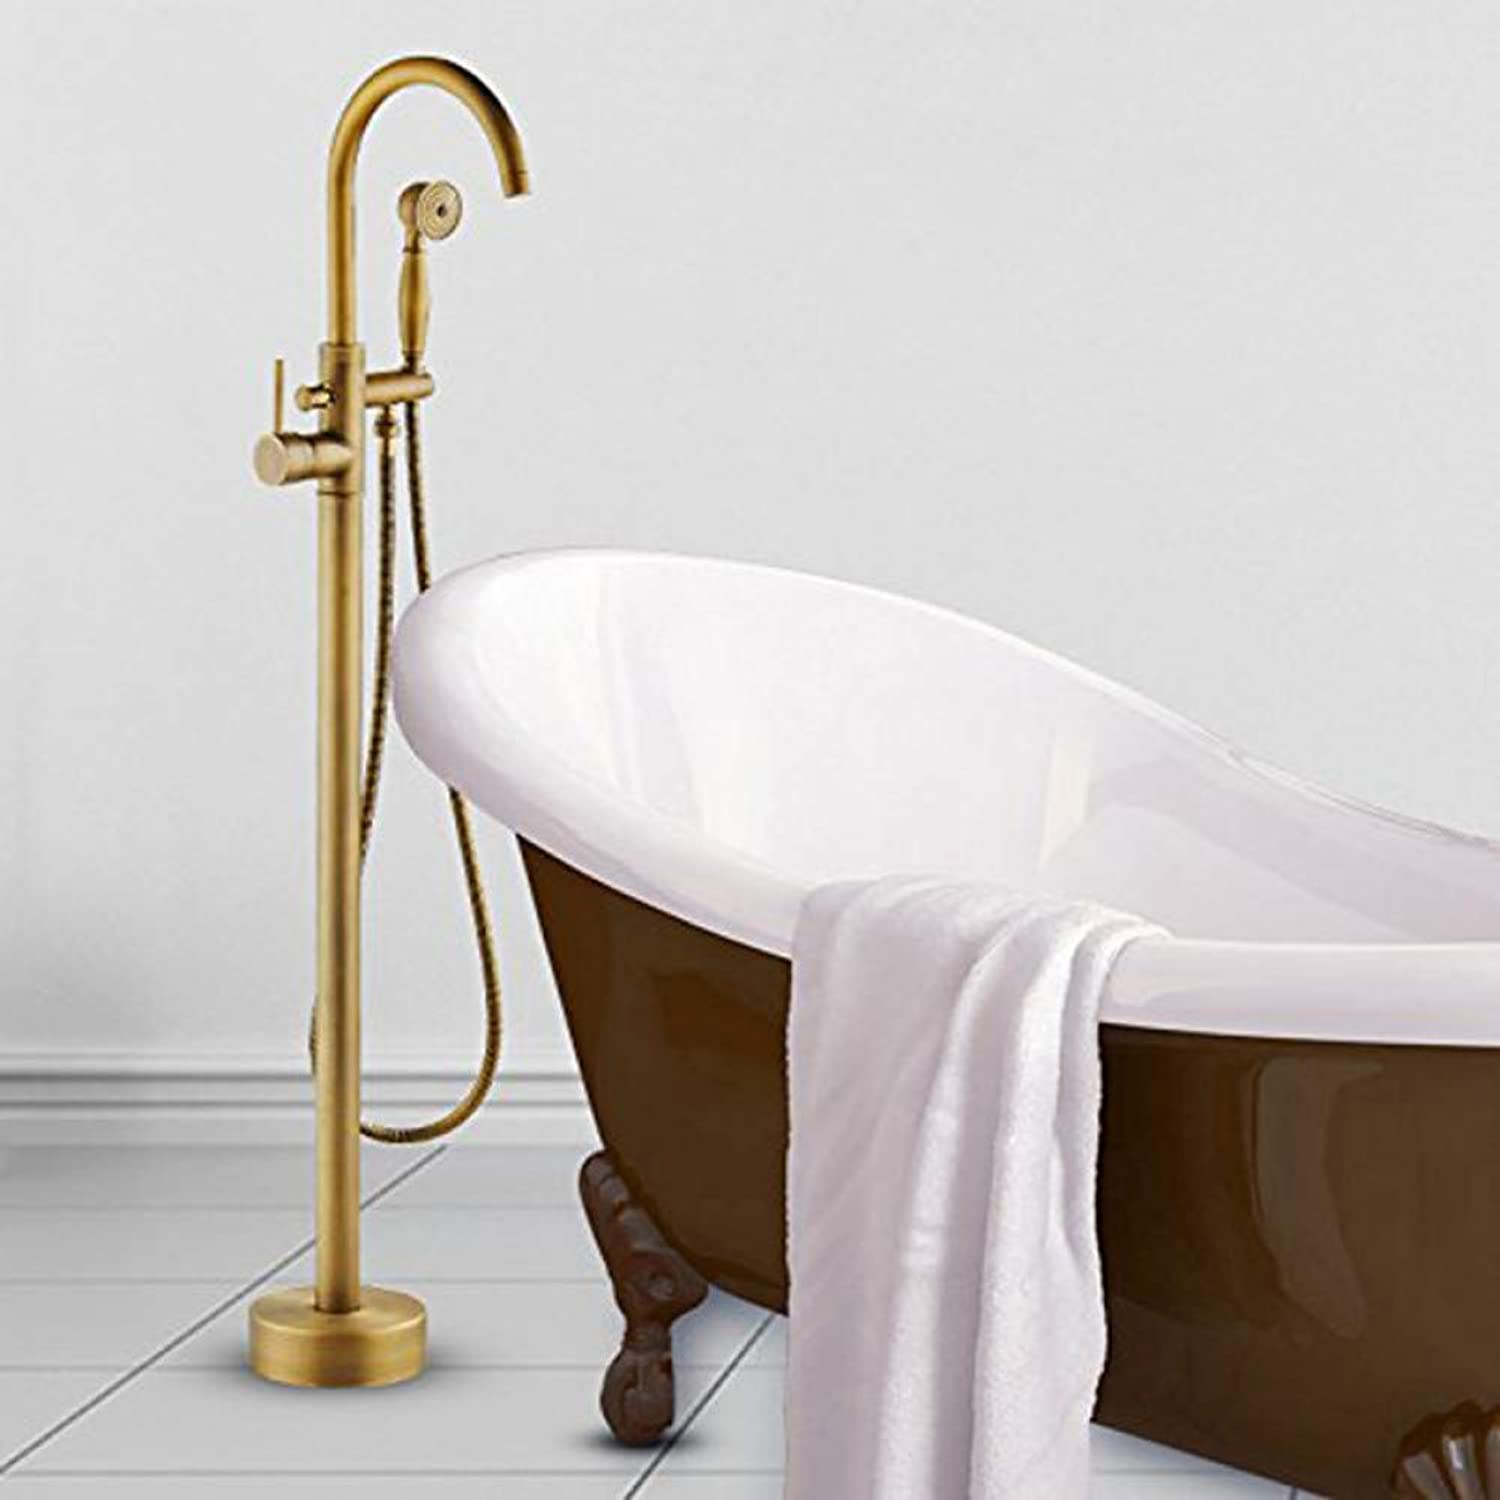 HUASAA Luxury Antique Brass Bathroom Tub Faucet Swivel Spout Filler Standing w Waterproof Platform Base Mixer Tap Hot and Cold